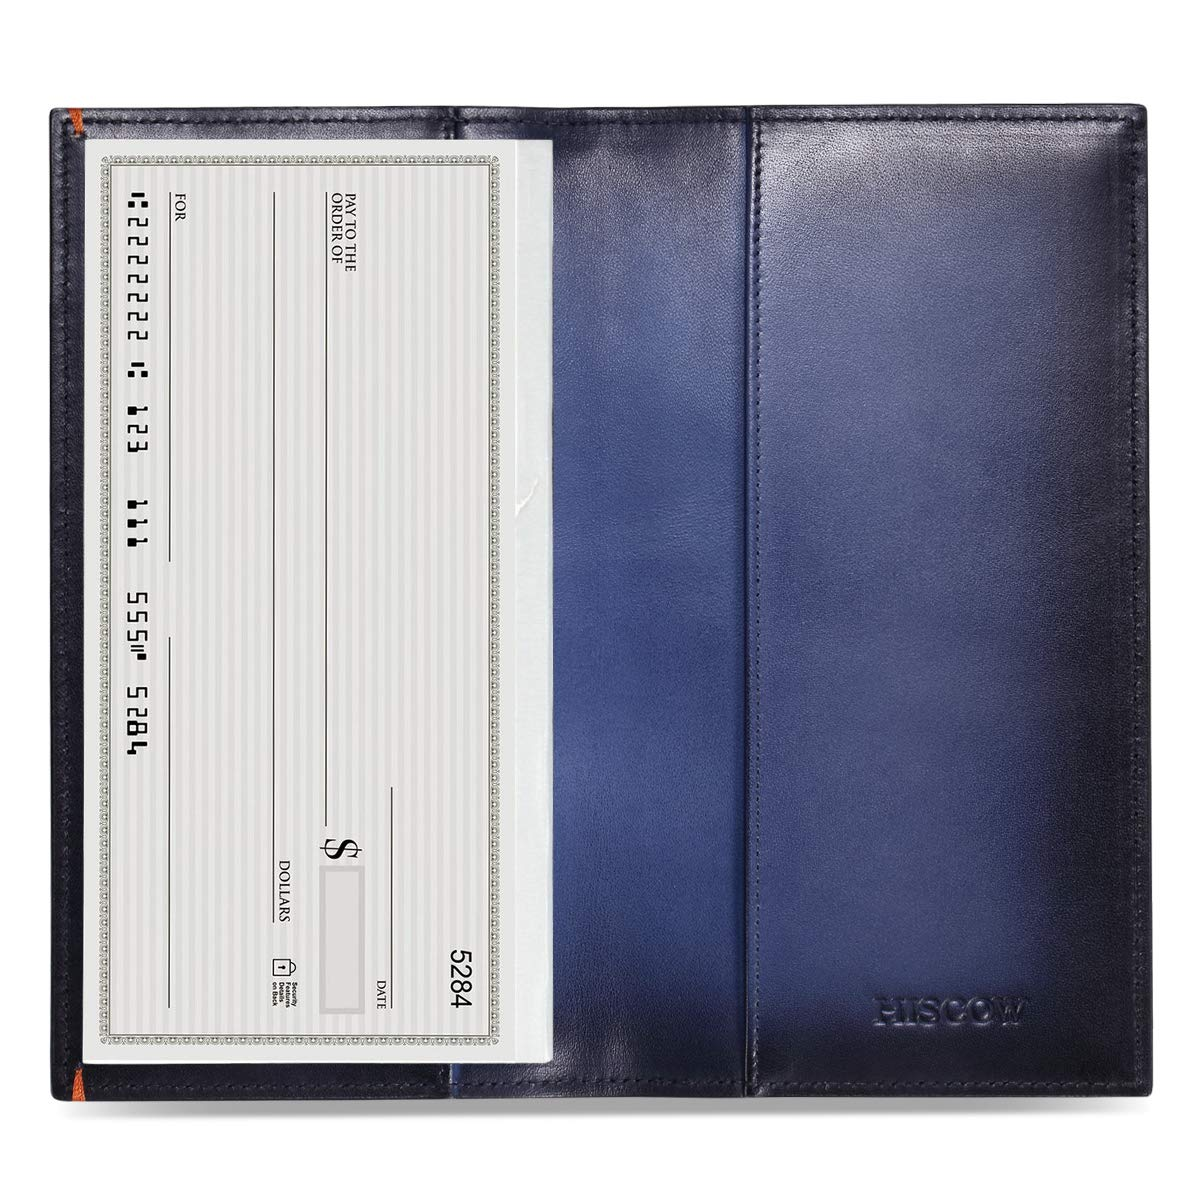 HISCOW Minimalist Checkbook Cover - Full Grain Leather (Brush-Off Blue)